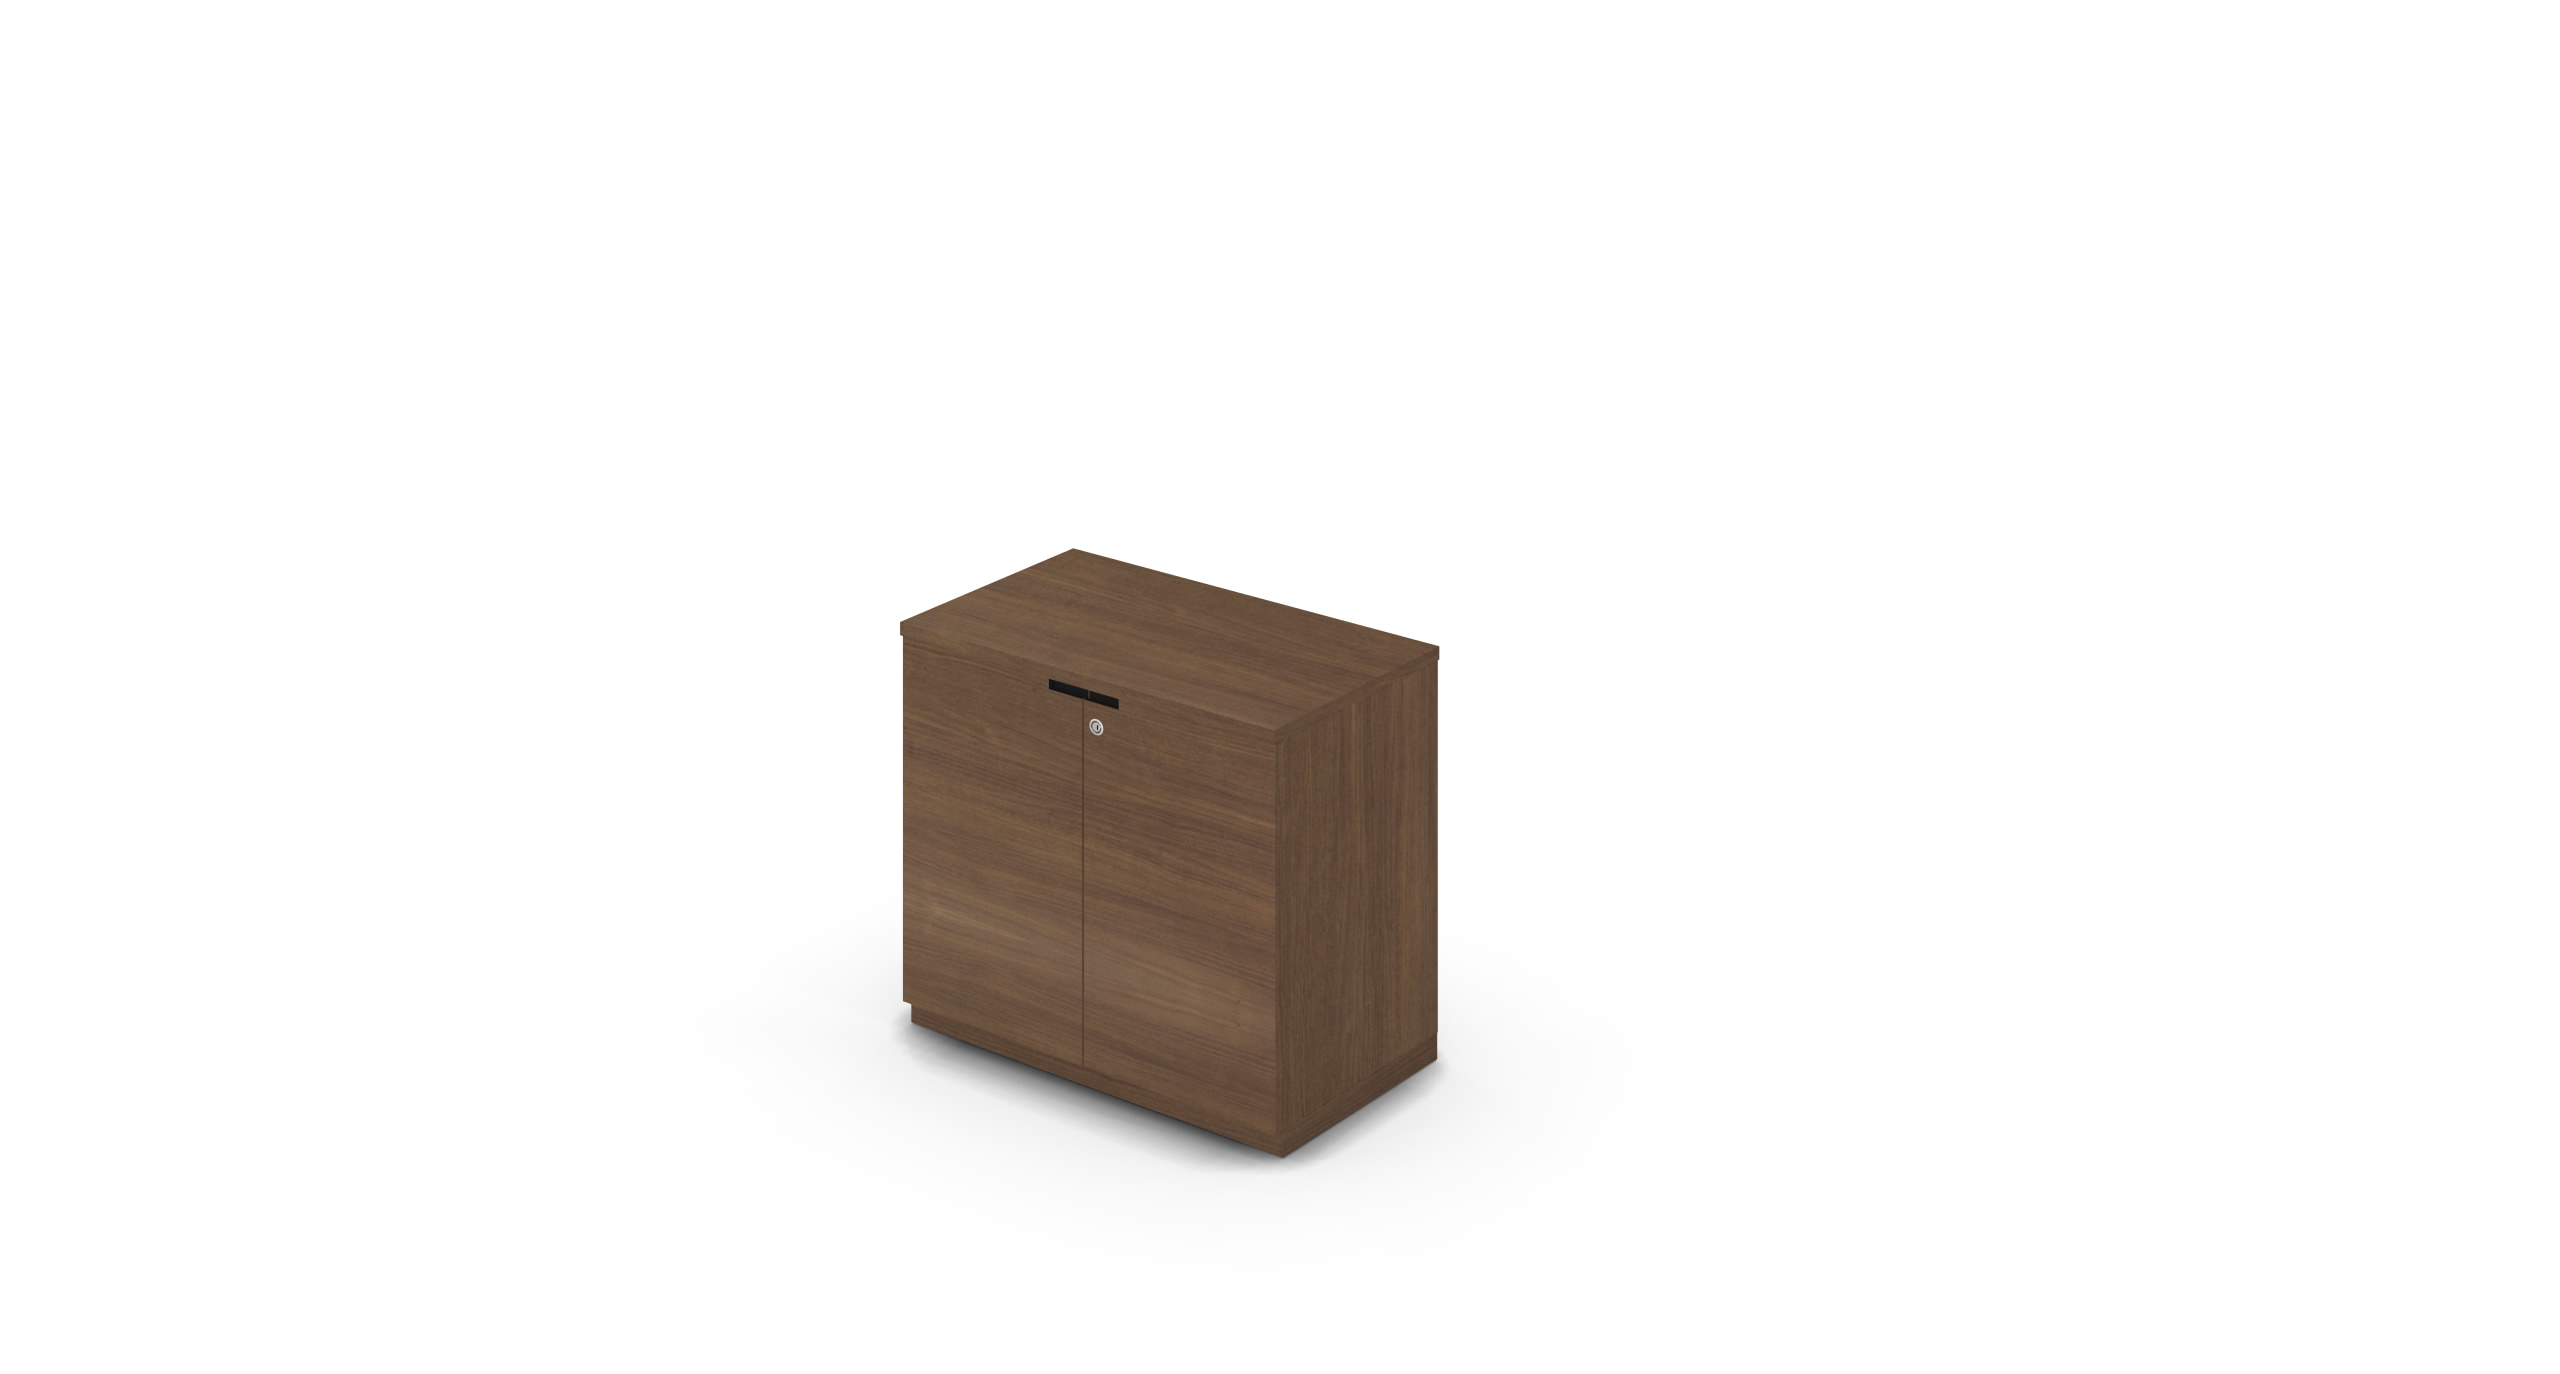 Cabinet_800x450x775_HD_Walnut_CutOut_WithCylinder